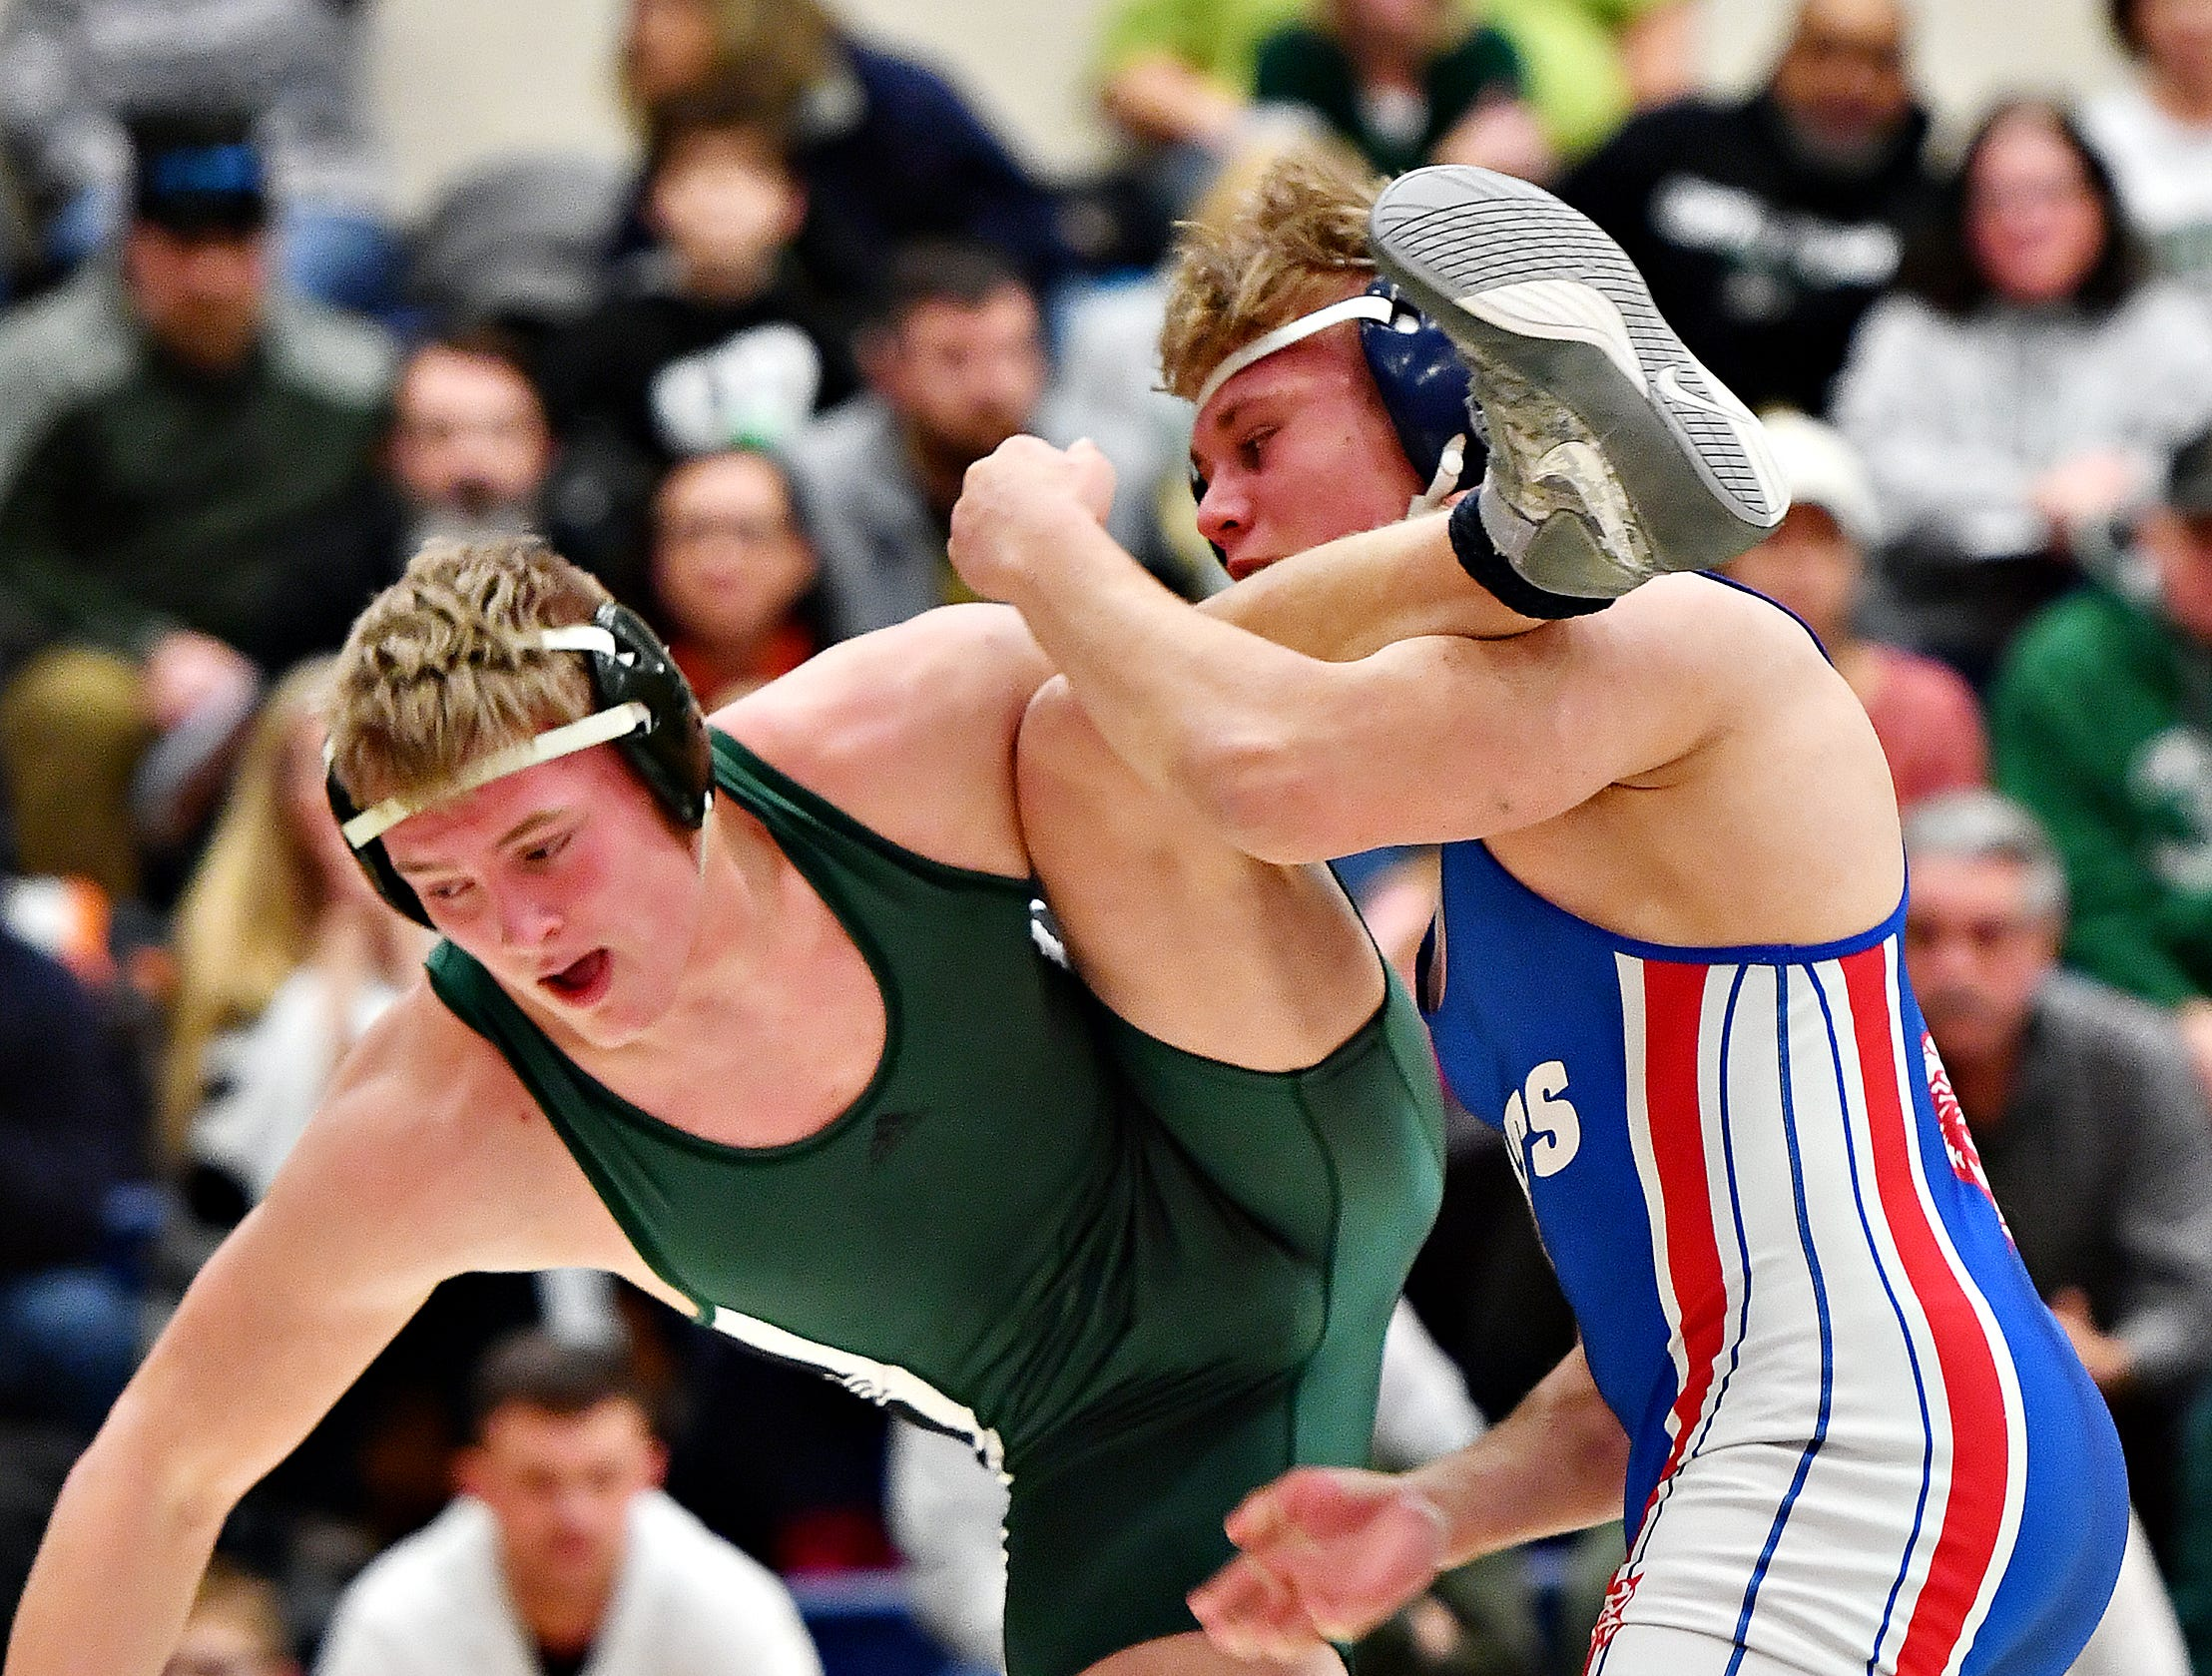 Dallastown's Jarrett Feeney, right, wrestles Central Dauphin's Jackson Talbott in the 195 pound weight class during District 3, Class 3A wrestling semifinal action at Spring Grove Area High School in Jackson Township, Thursday, Jan. 31, 2019. Dawn J. Sagert photo